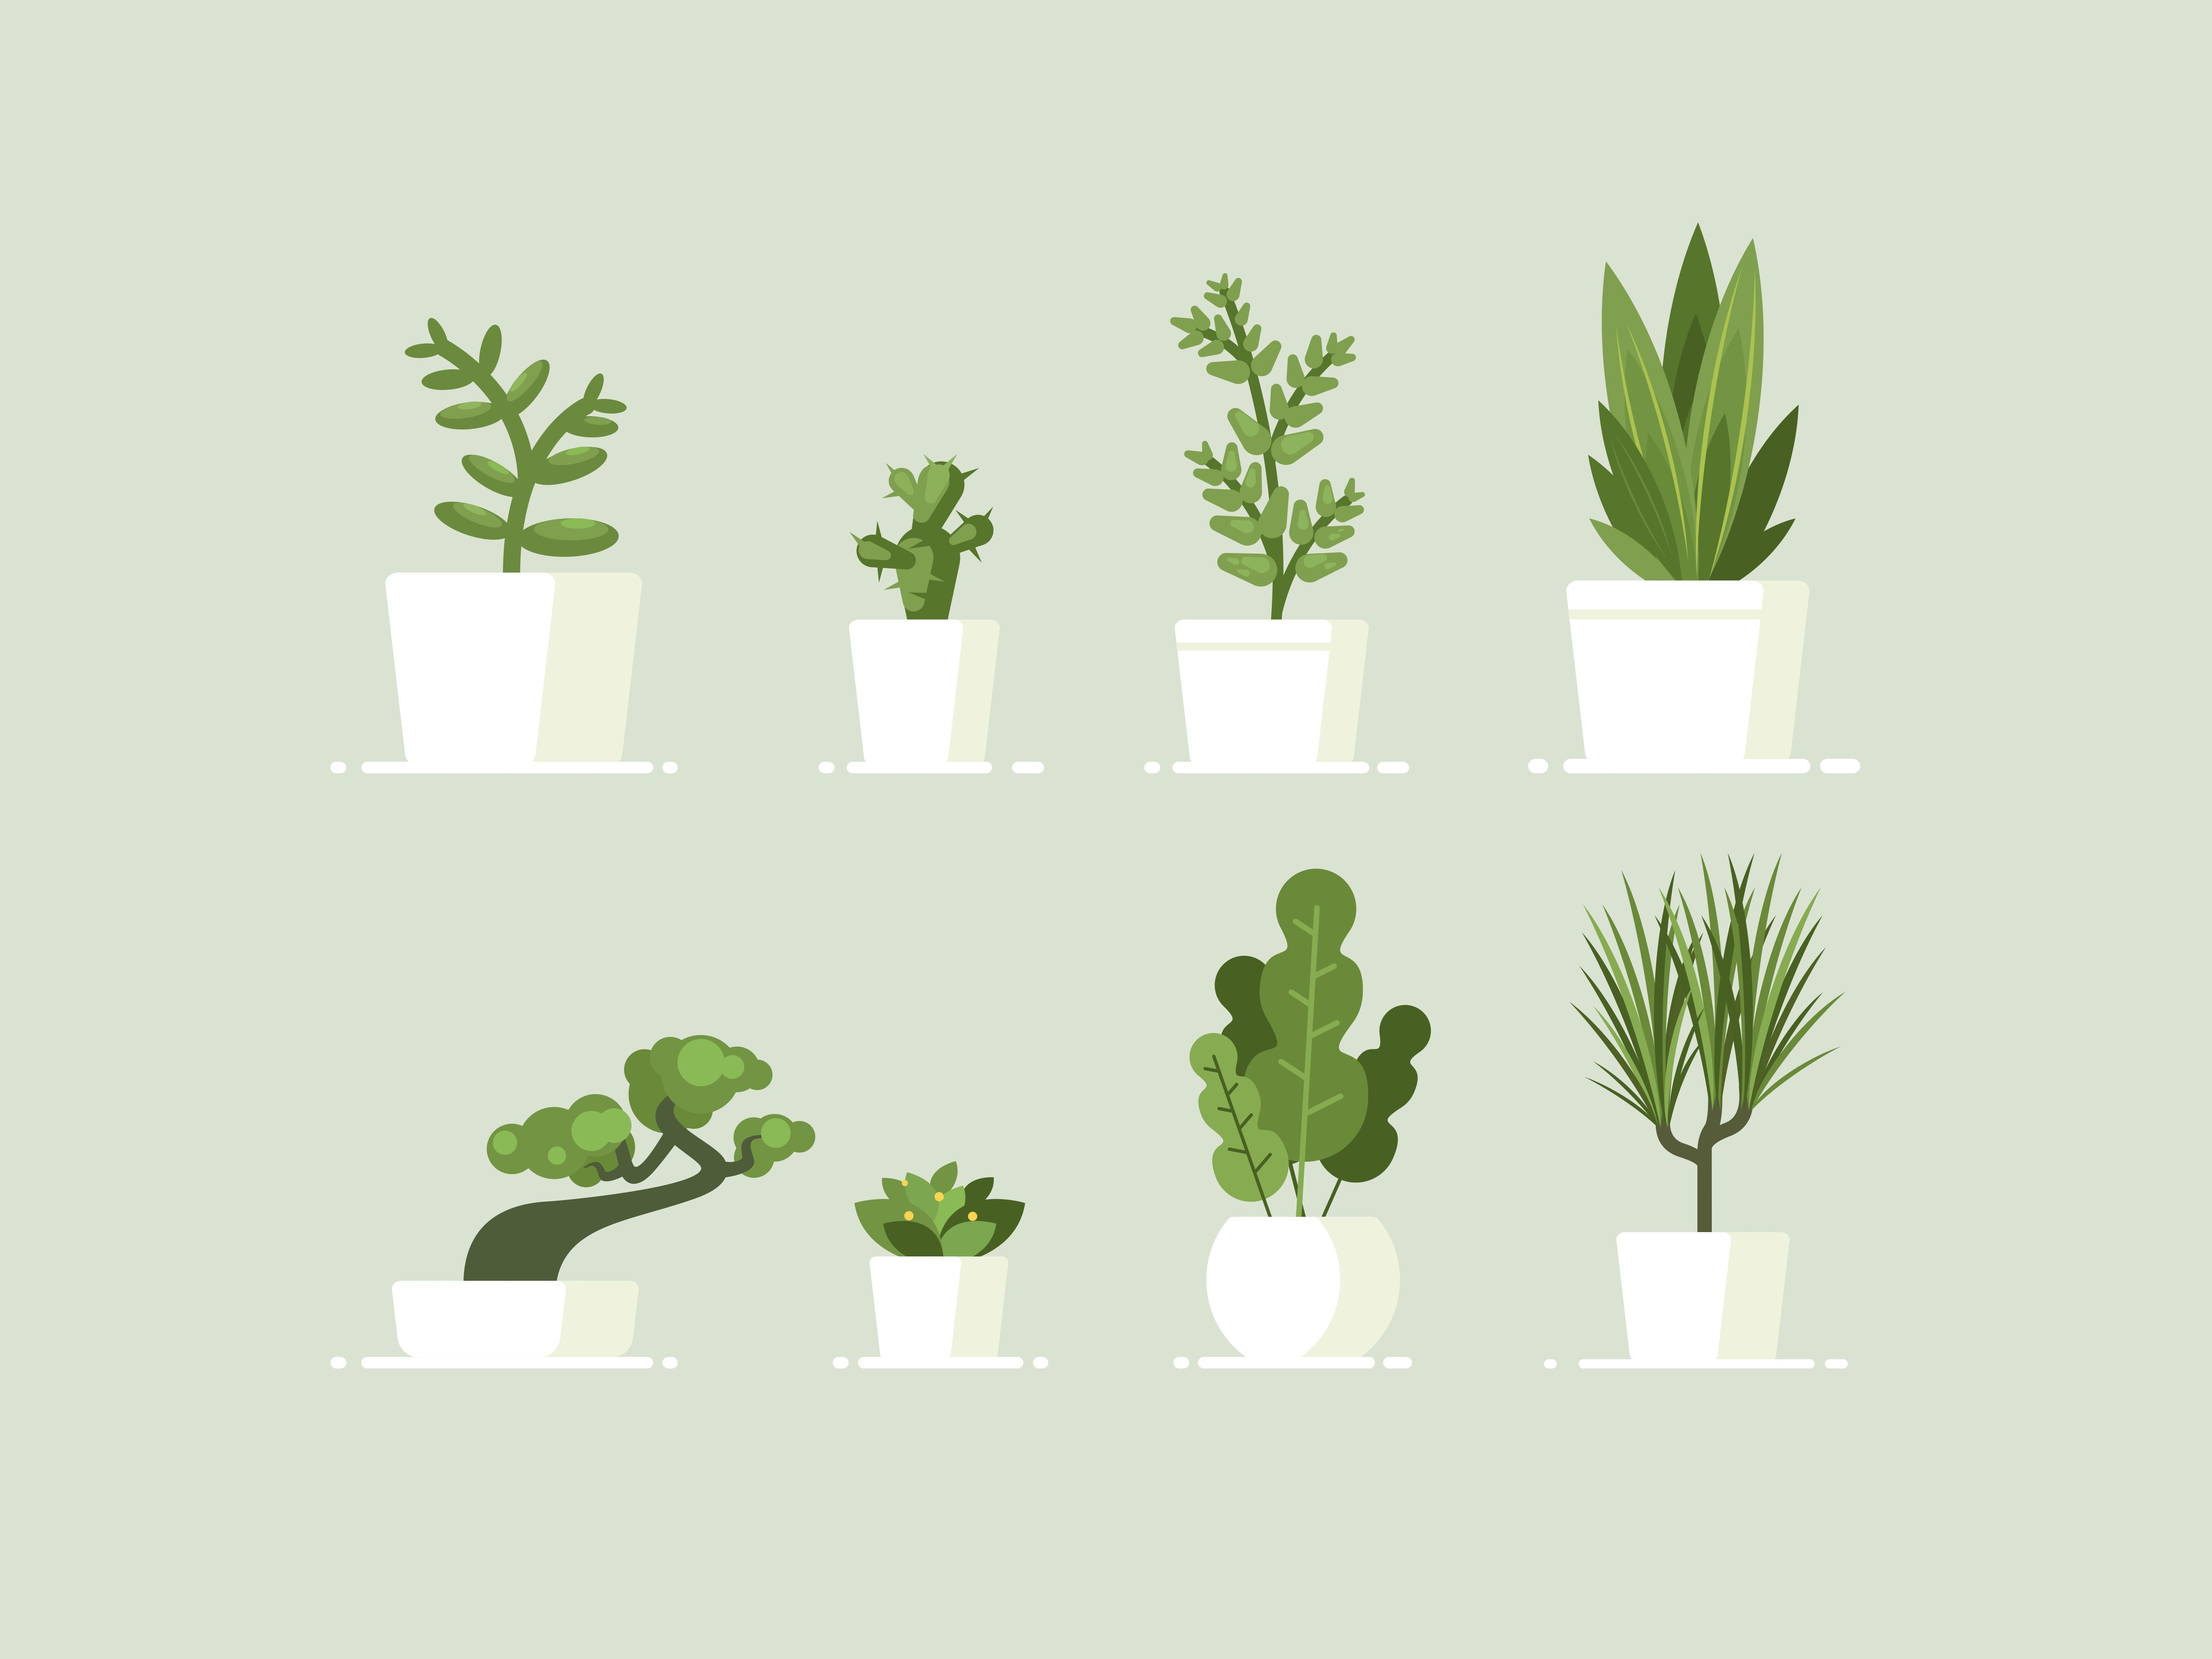 Spider Plant Or Pothos These Are The 5 Best Plants For A Home With Low Light Huffpost Uk Life